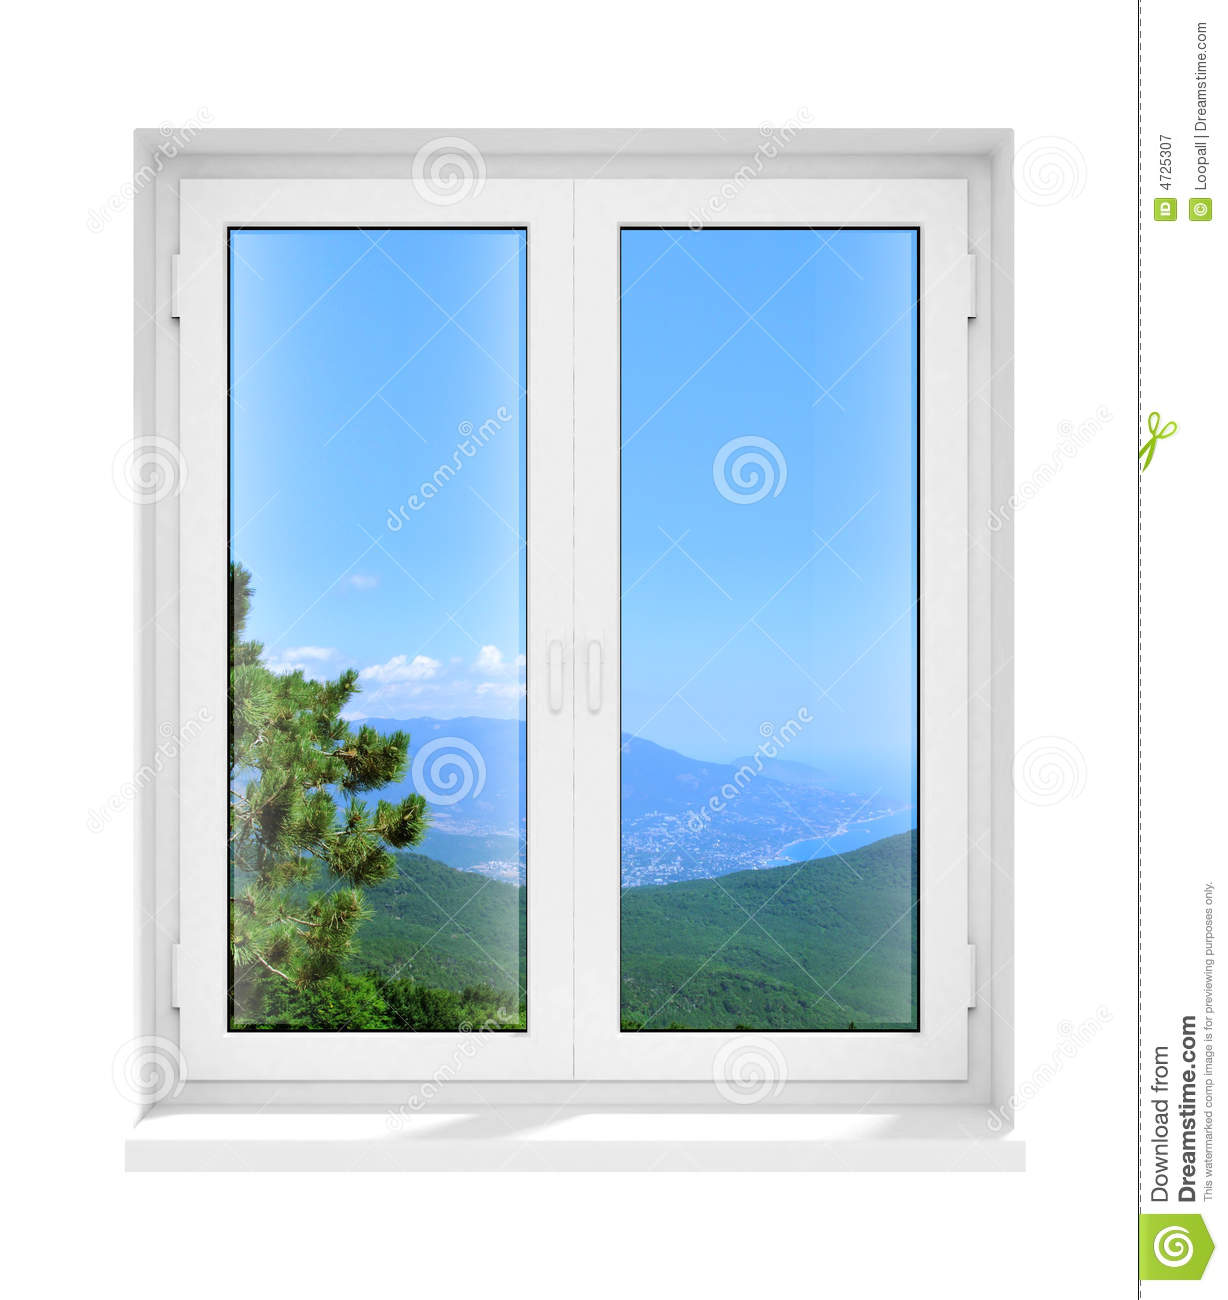 Closed Window Frame : New closed plastic glass window frame isolated stock